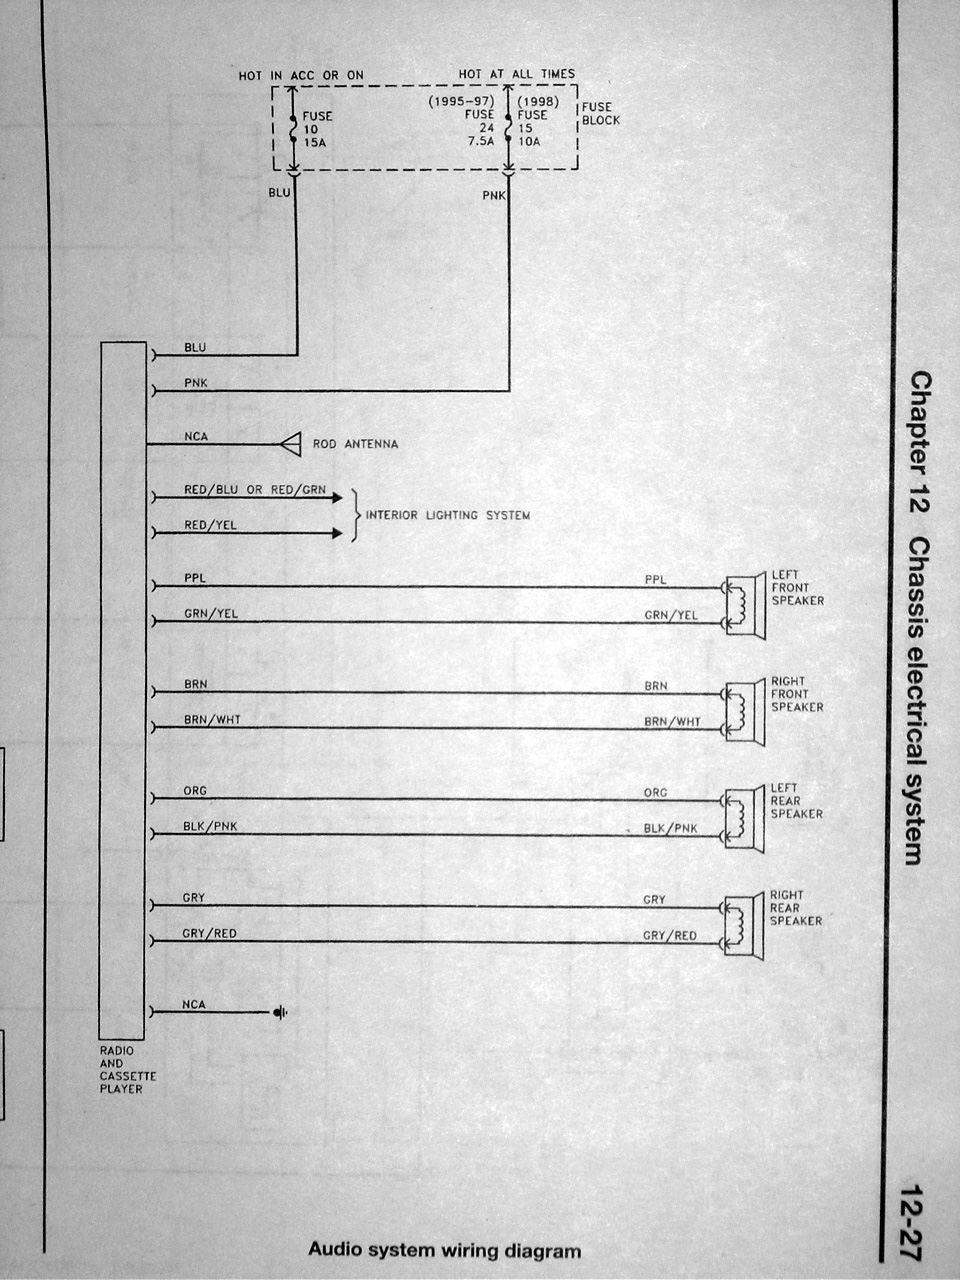 medium resolution of nissan pulsar wiring diagram radio circuit diagram schematic clarion marine radio wiring diagram pioneer radio wiring